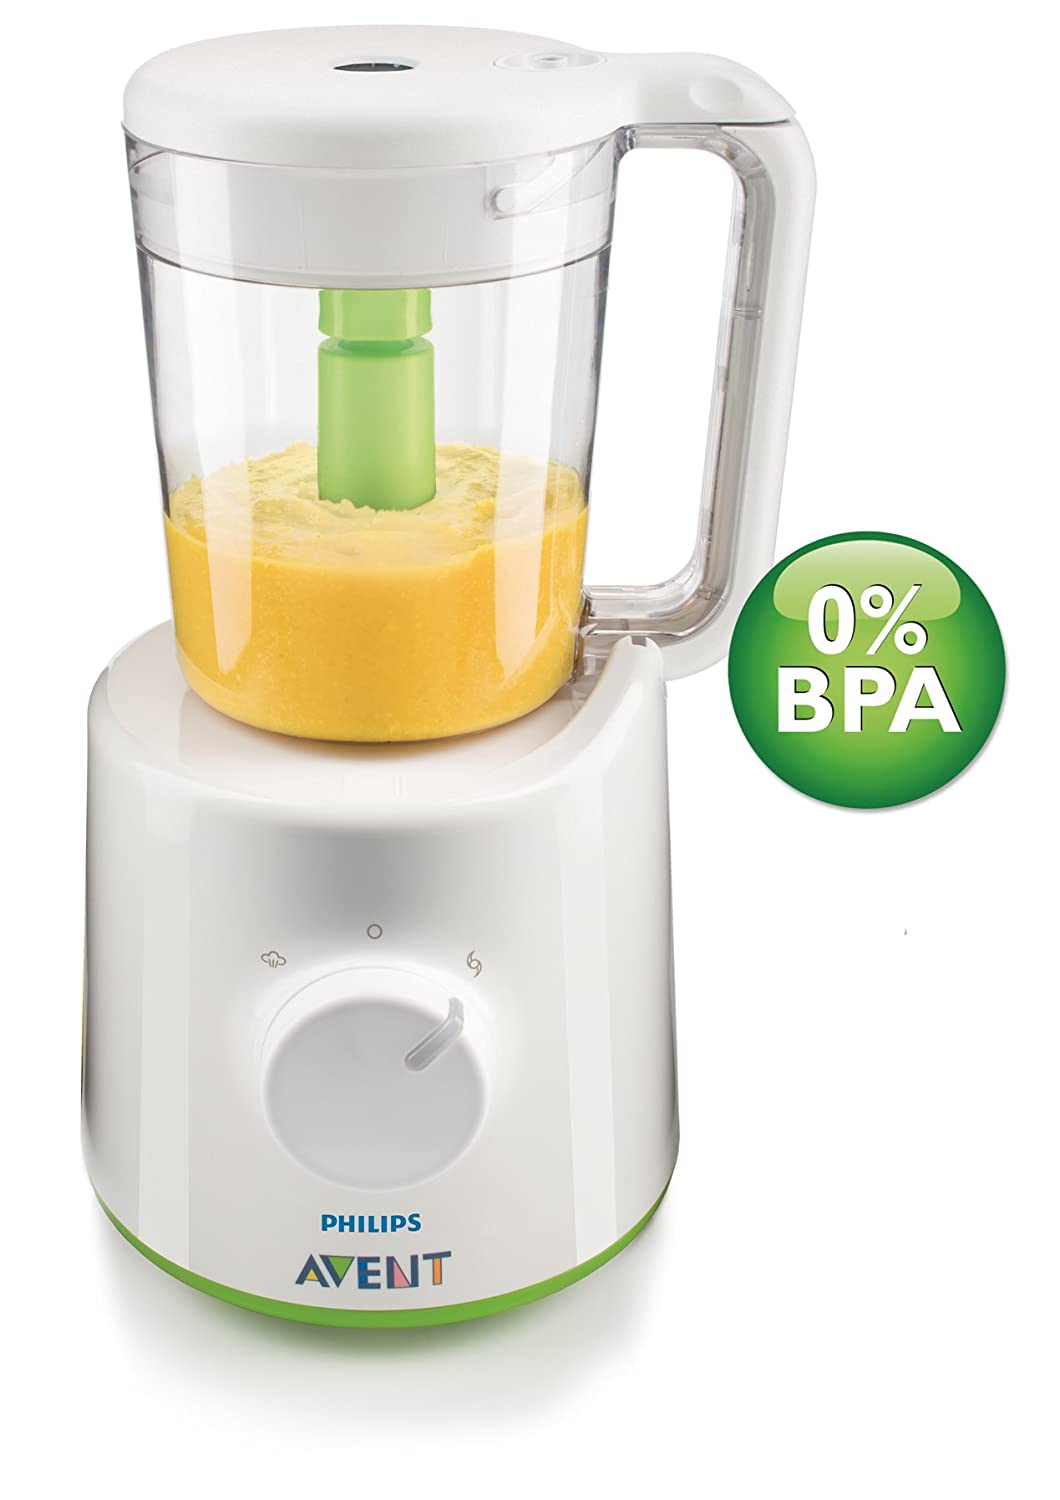 Philips Avent Combined Baby Food Steamer and Blender  AVENT  Amazon.co.uk   Baby f89e40291a8